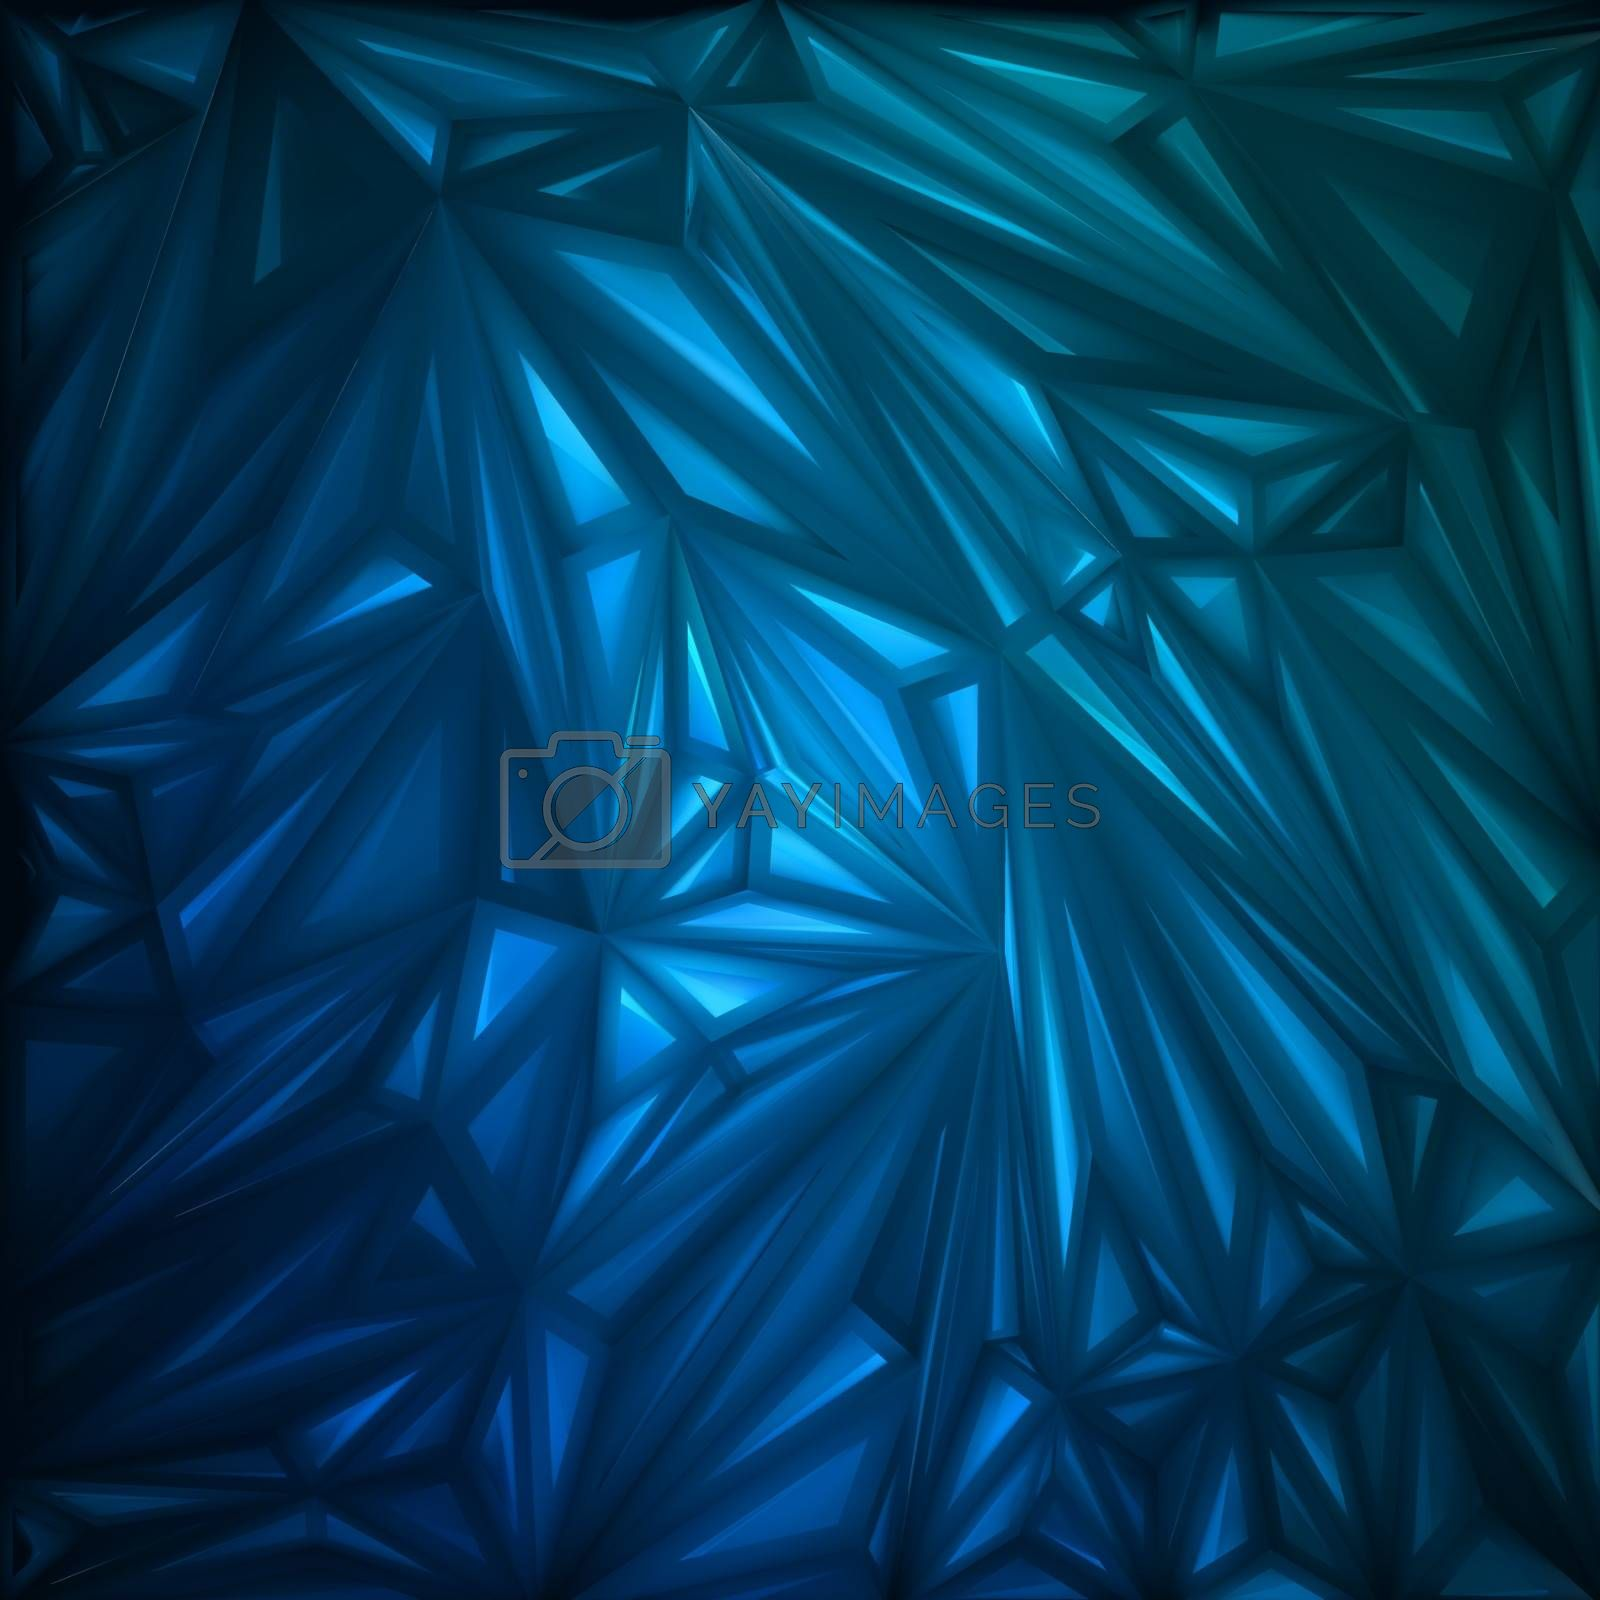 Abstract Triangle glow template. EPS 8 vector file included